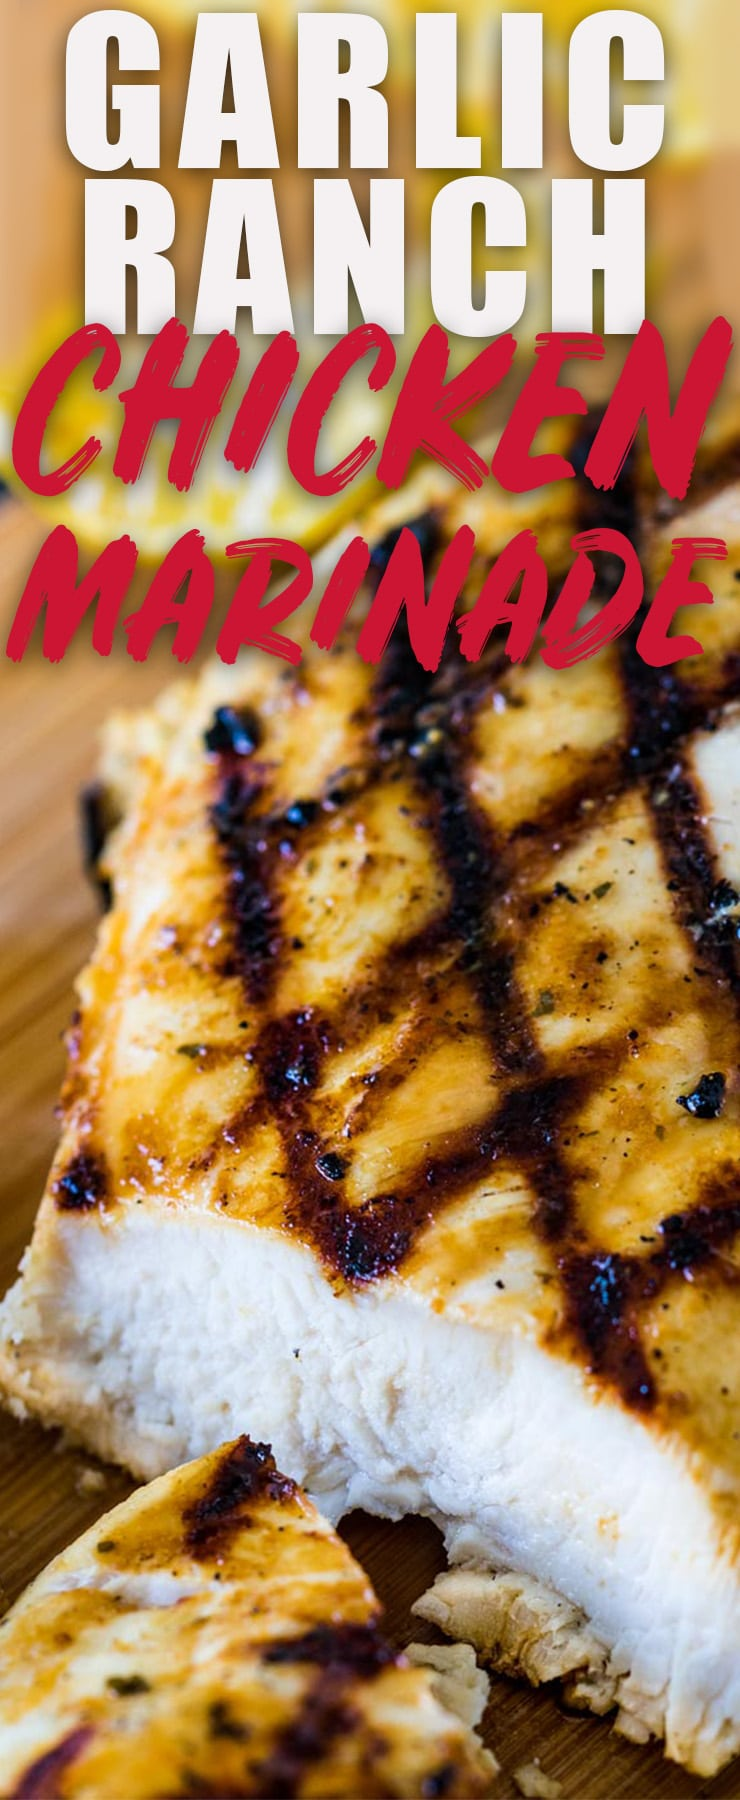 Garlic Ranch Chicken Marinade is a quick and easy marinade that is full of flavor and makes grilling, sautéing, or baking delicious chicken a snap. #garlic #ranchdressing #chicken #grilled #marinade #ranchdressingmix